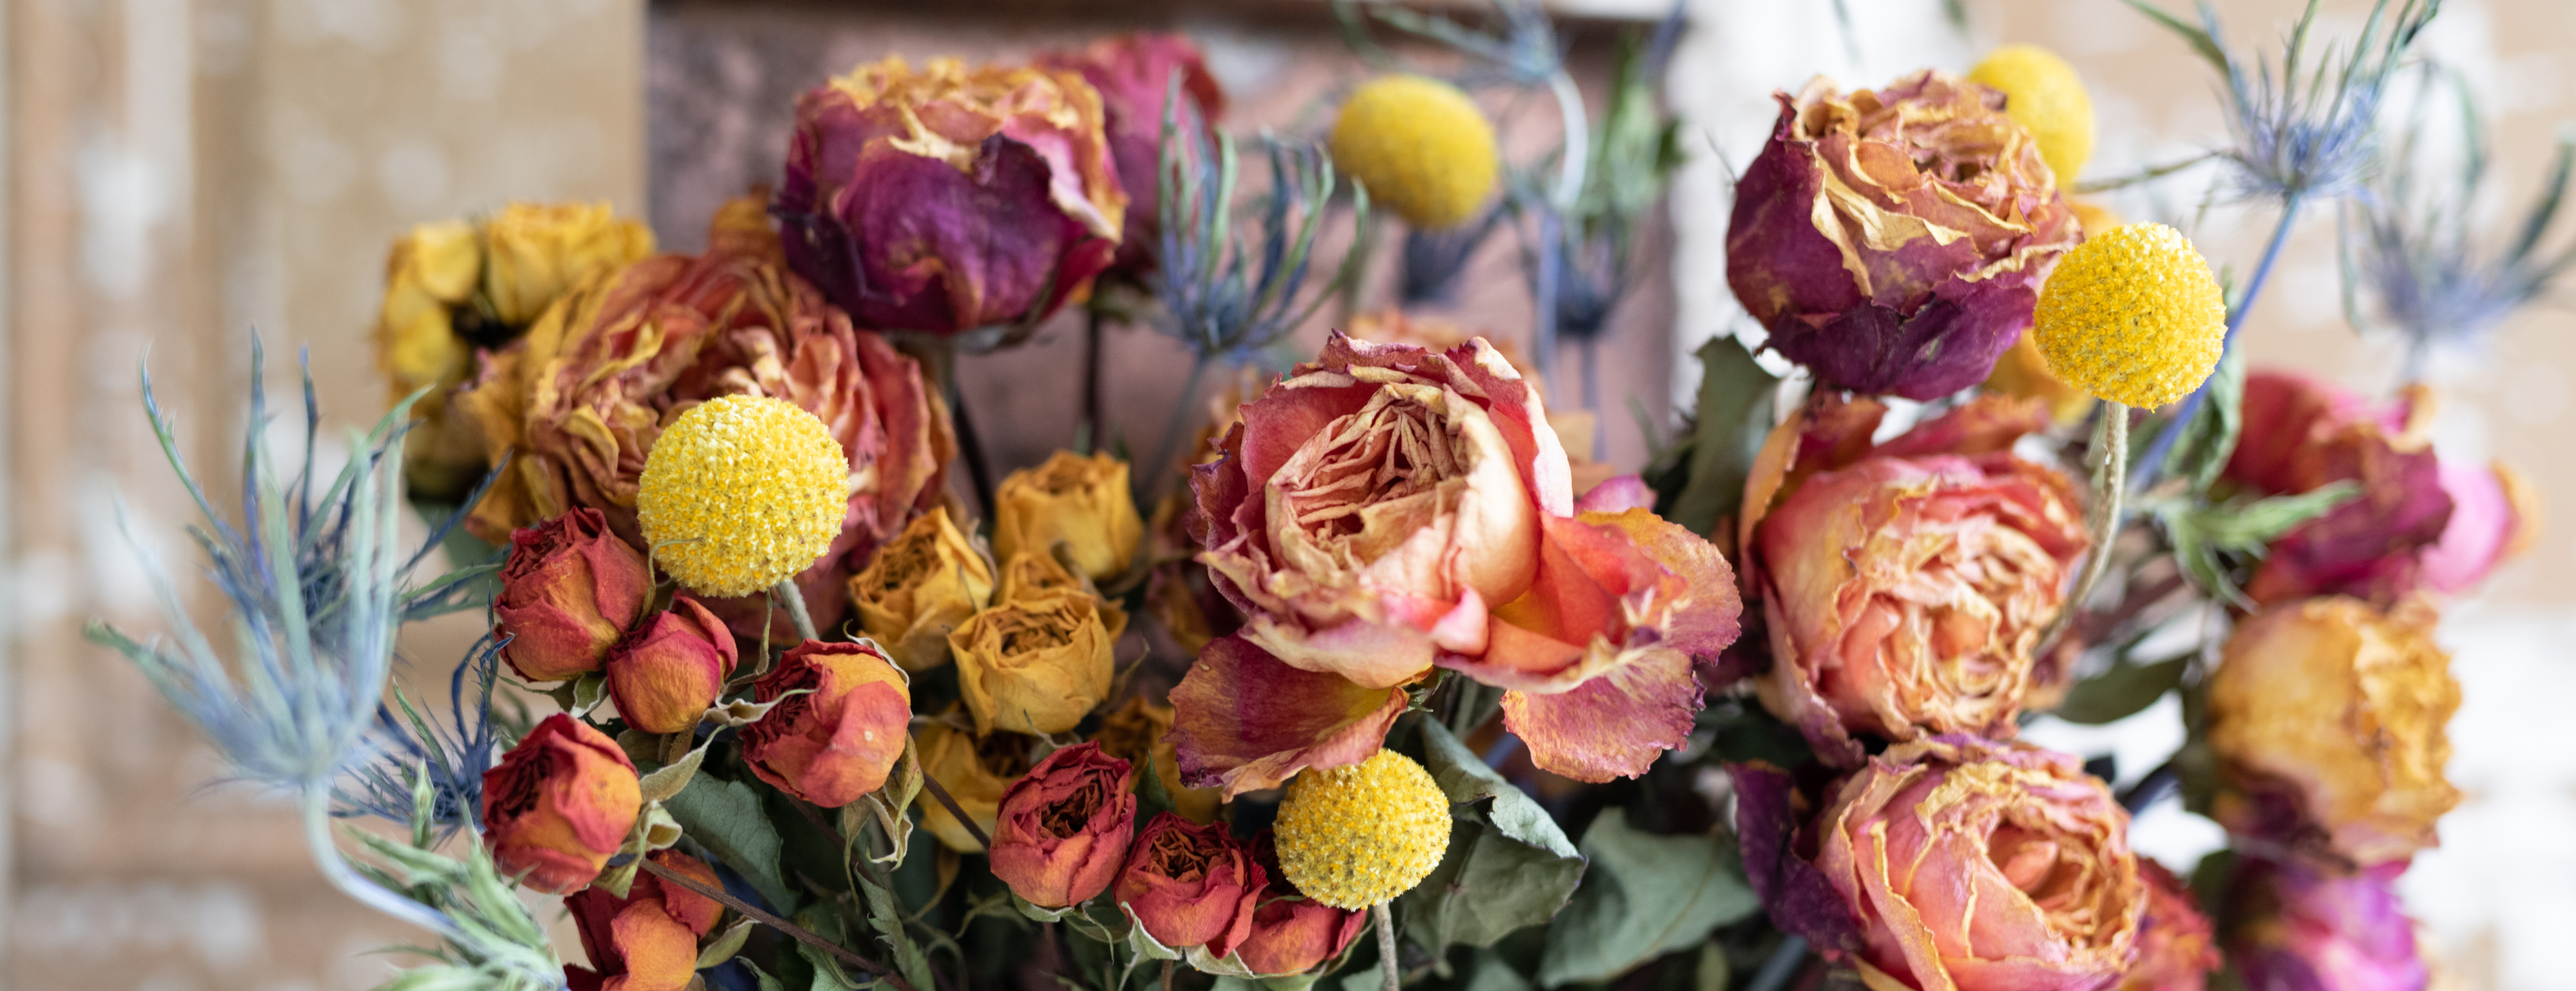 Arrangement of colorful dried flowers